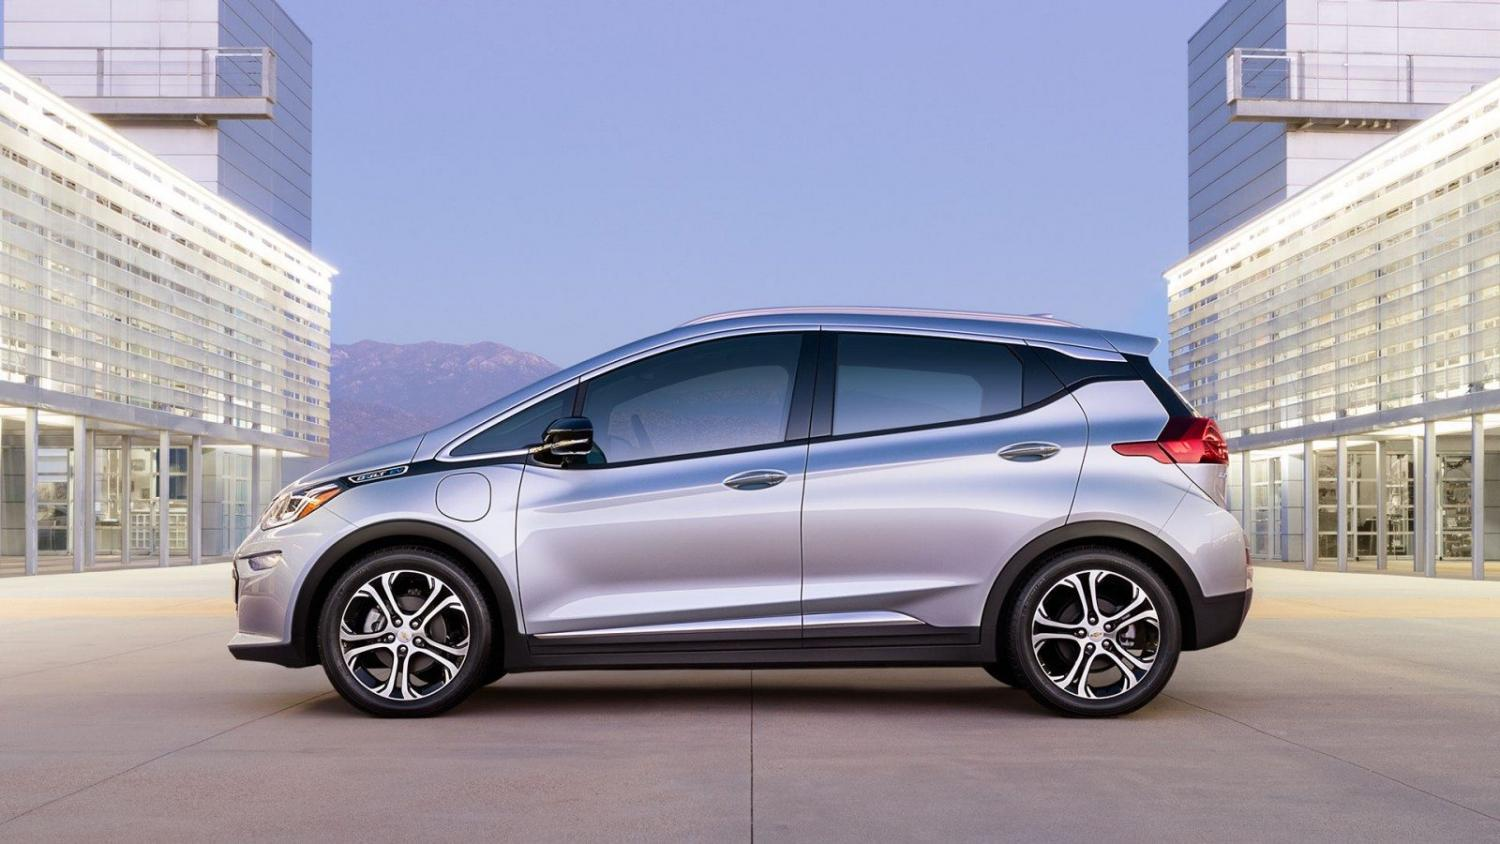 Chevy-Bolt-2016.jpg